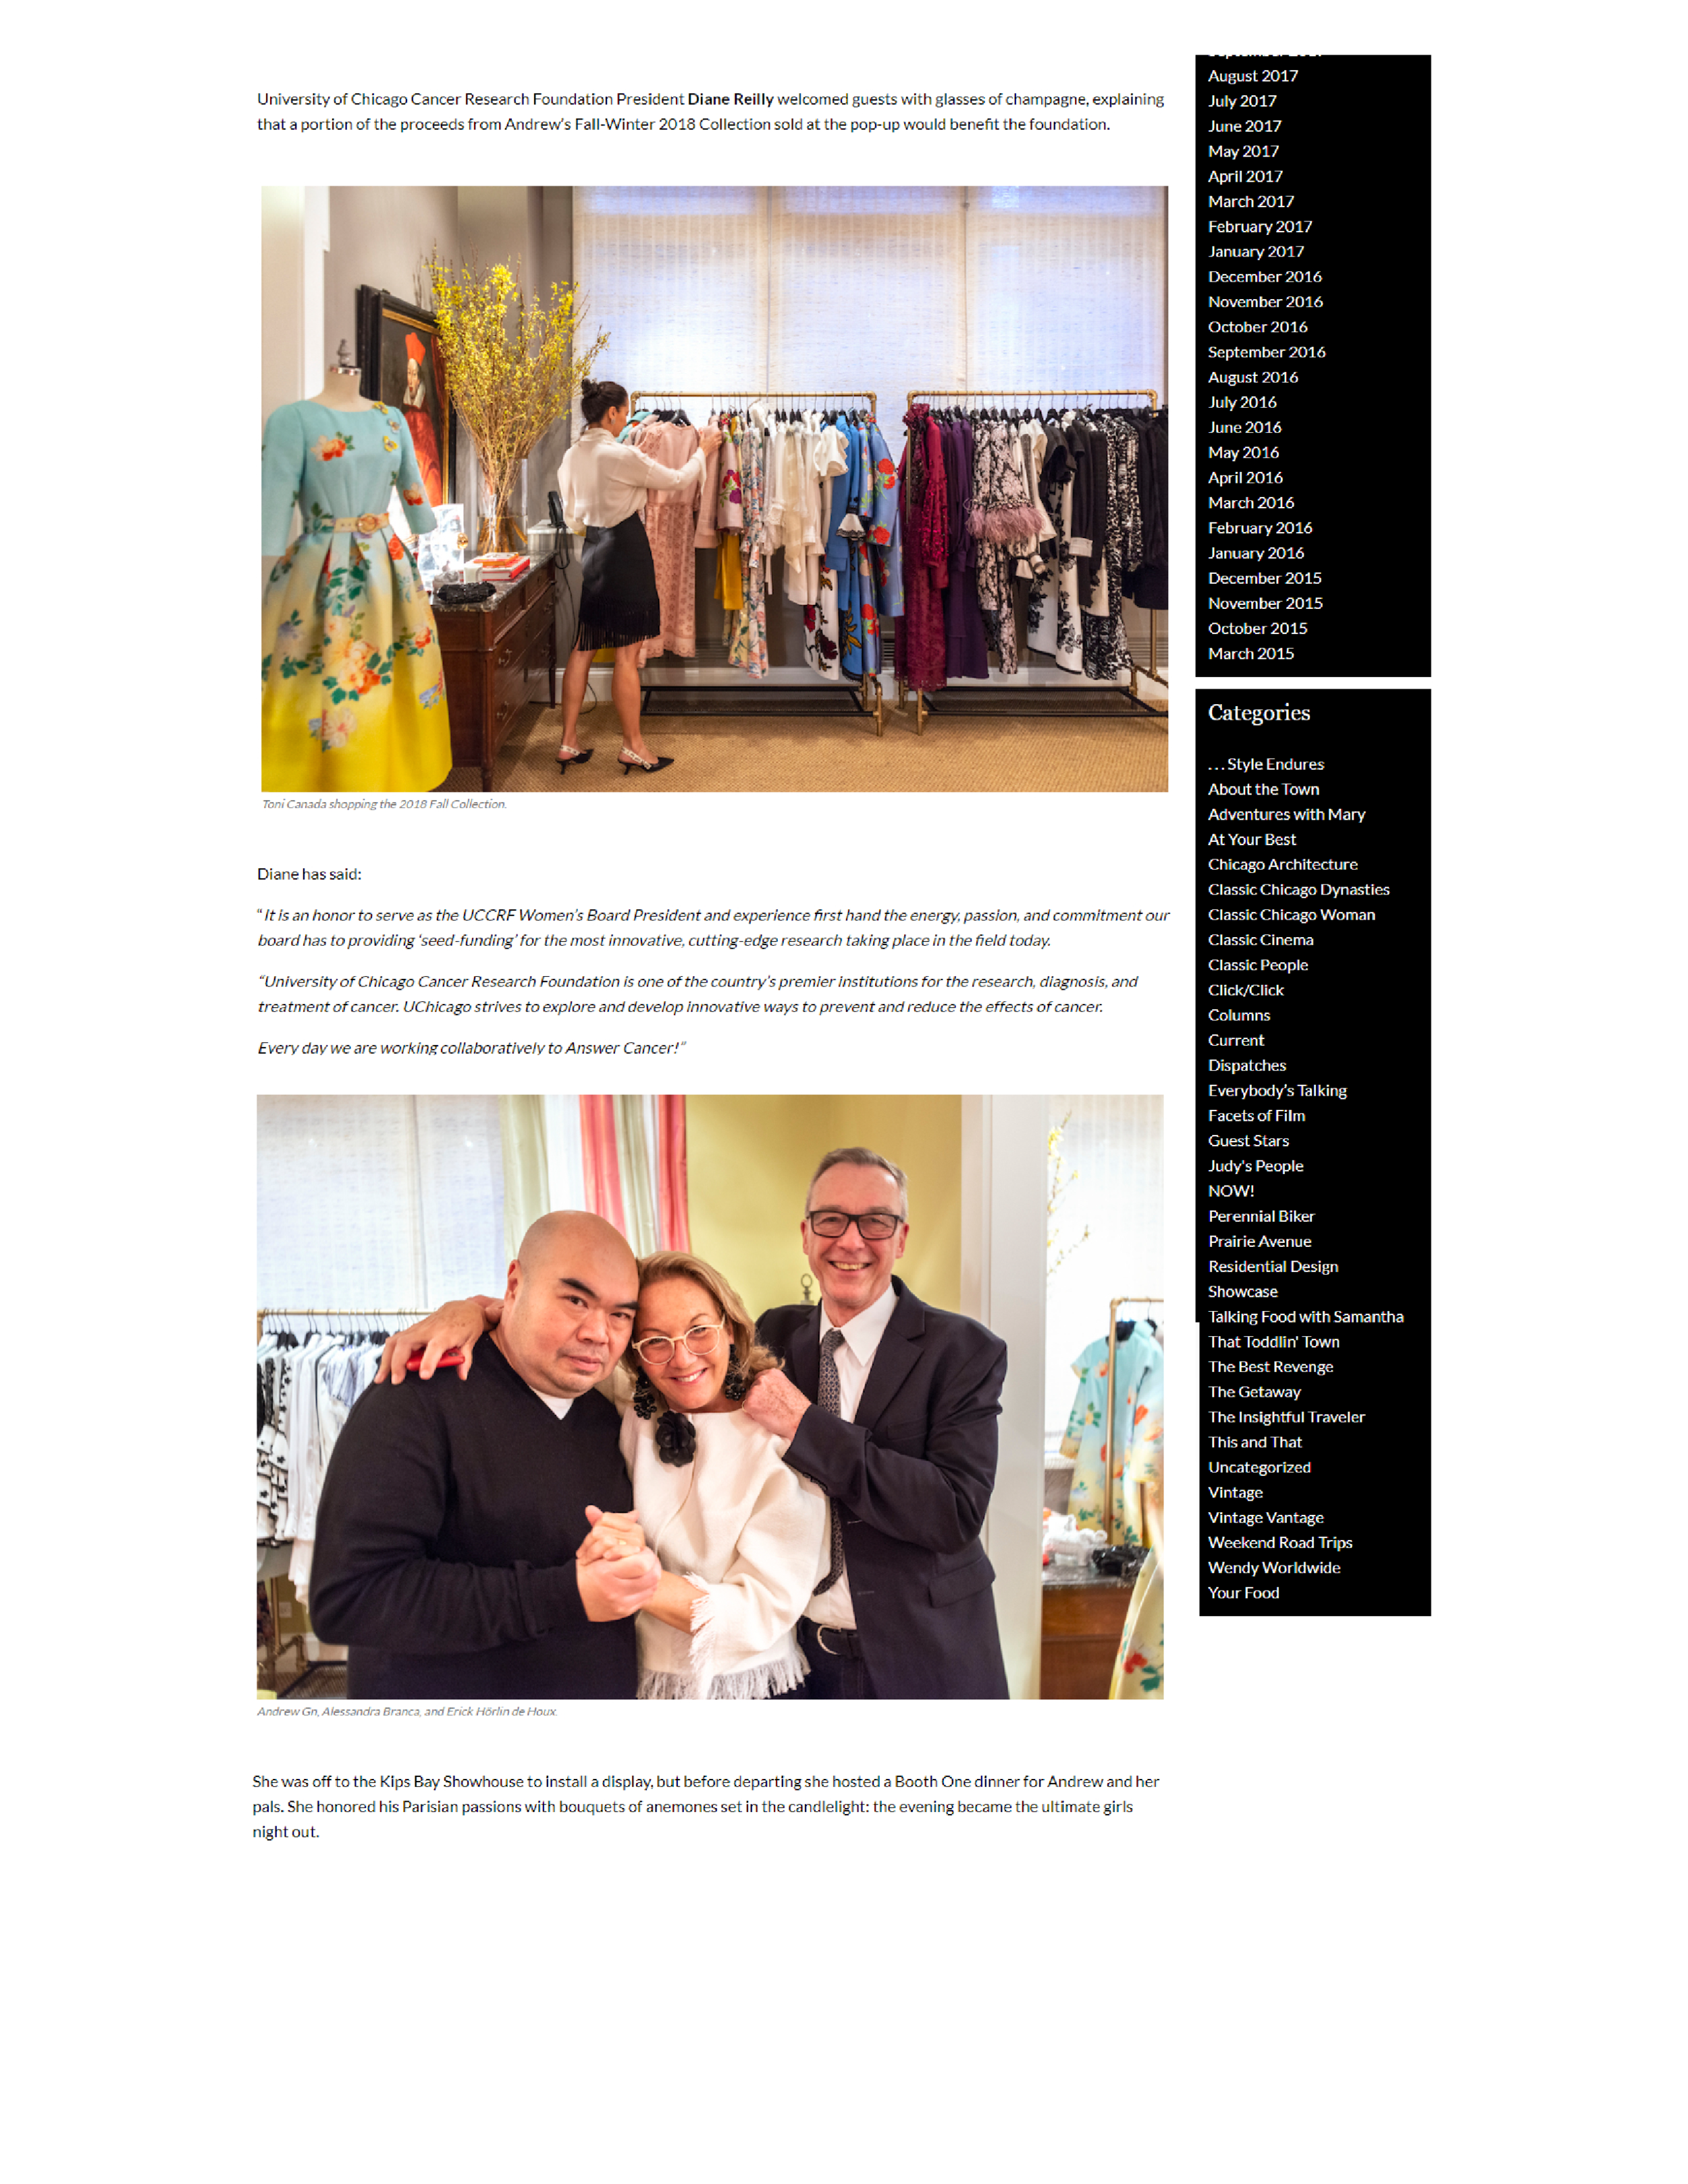 andrew gn article second page.png